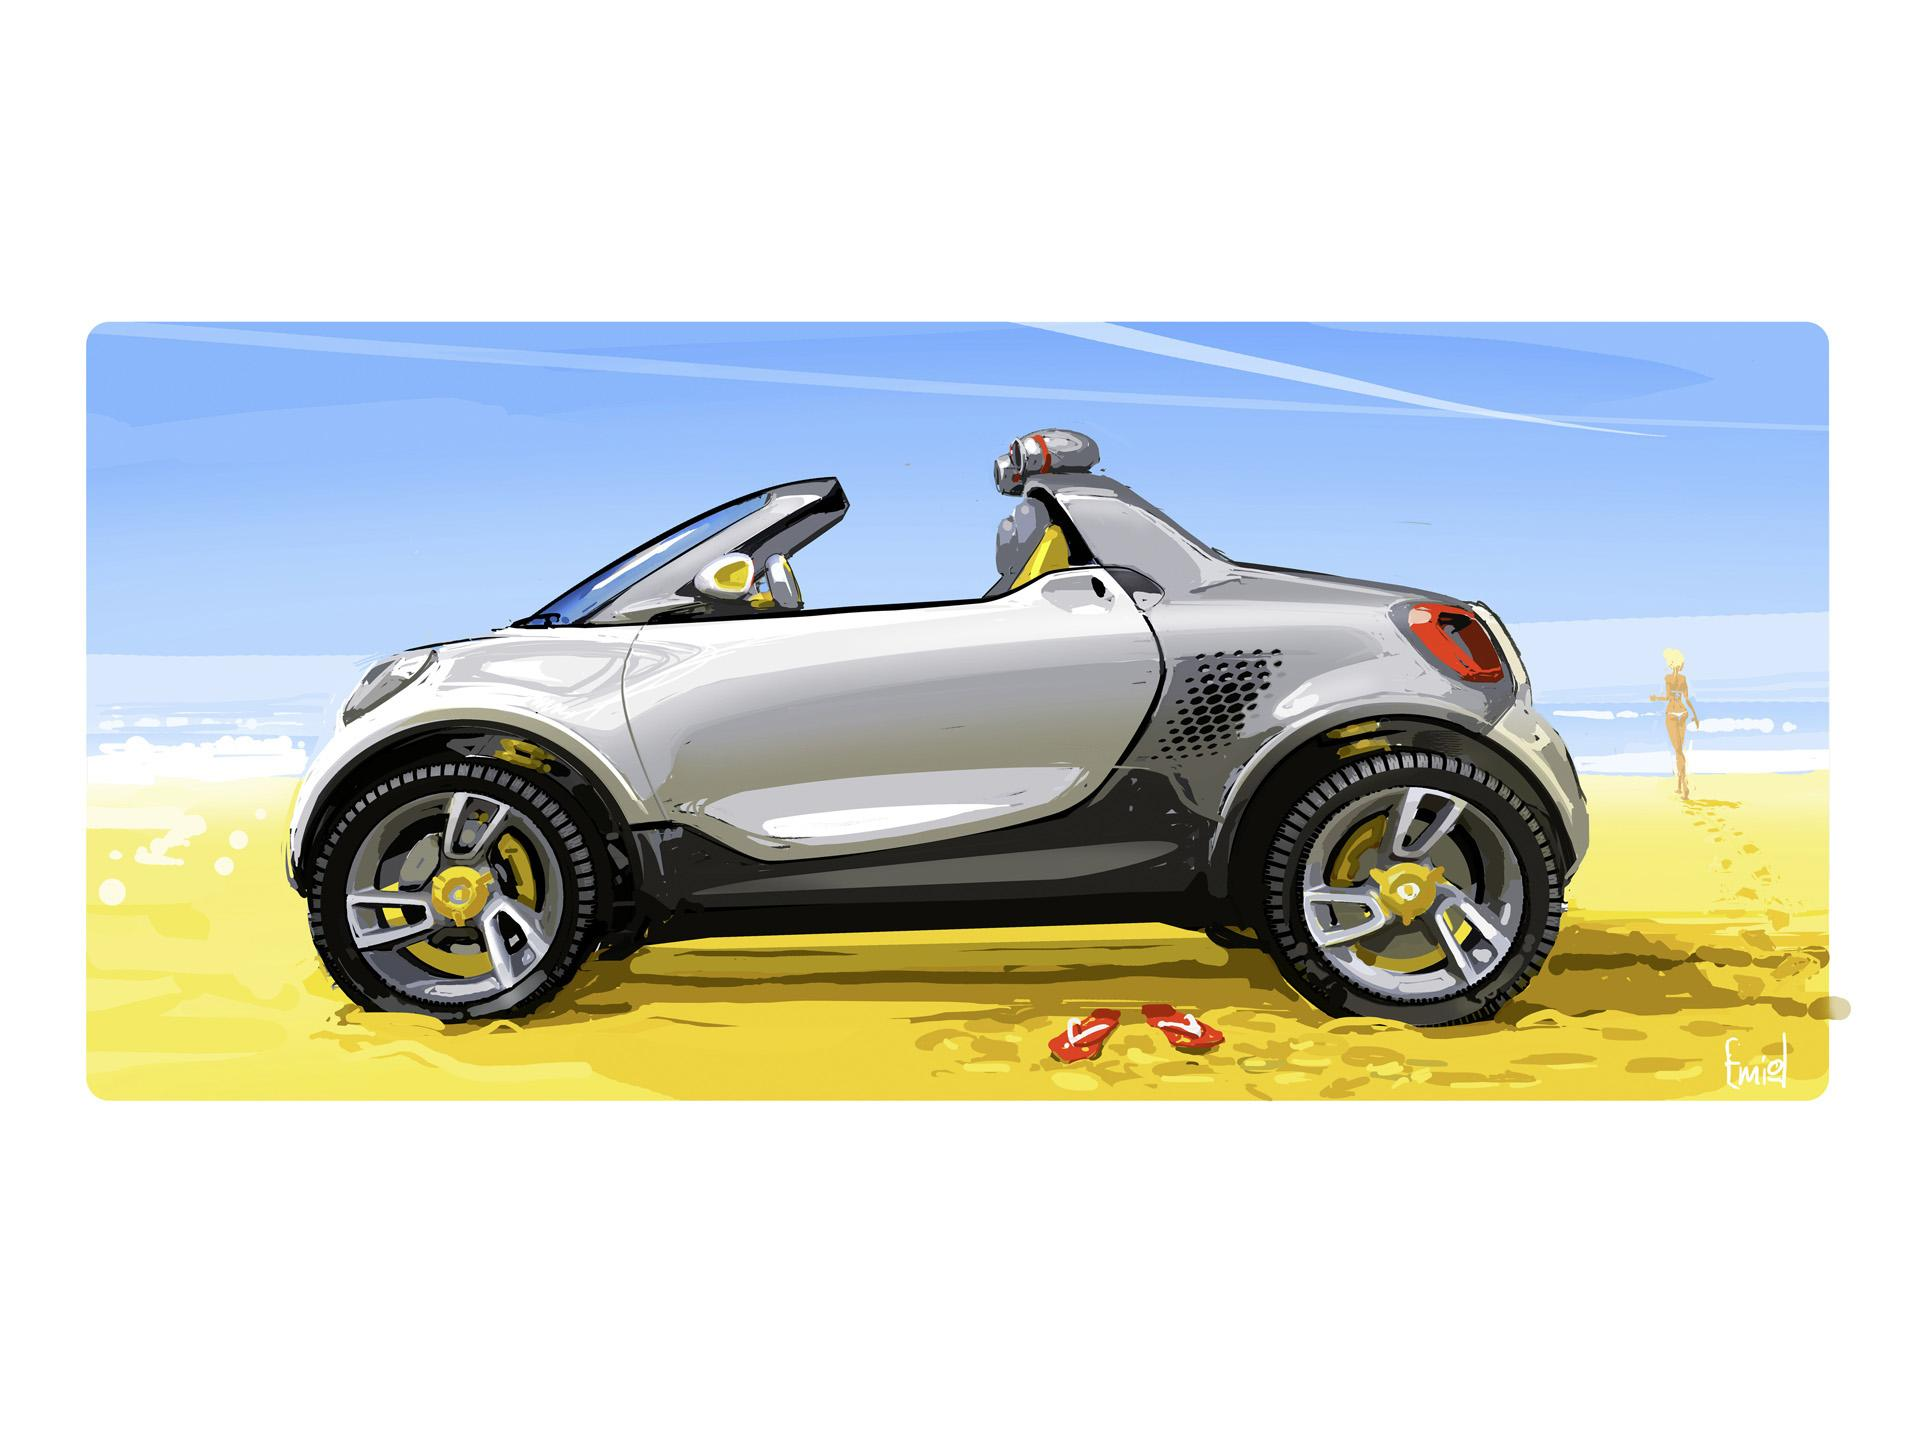 2012 smart for-us study - Design Sketch 2 - 1920x1440 - Wallpaper